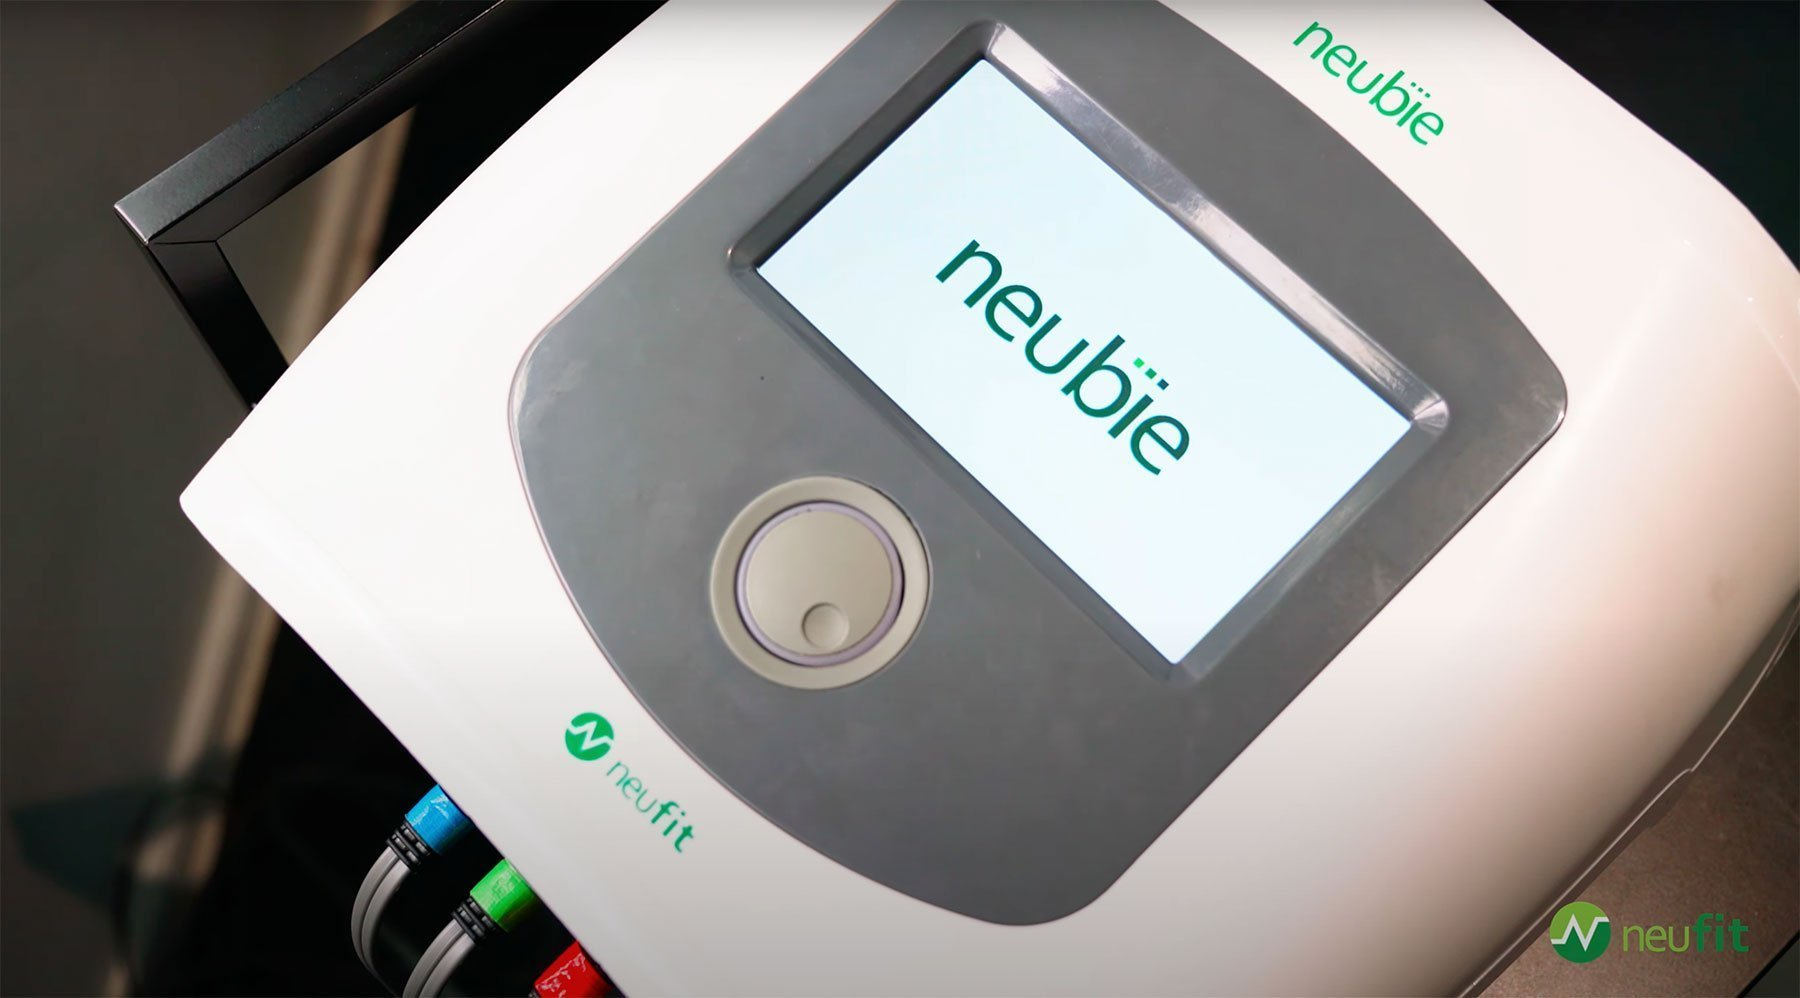 How Much Does a Neubie® Device Cost?